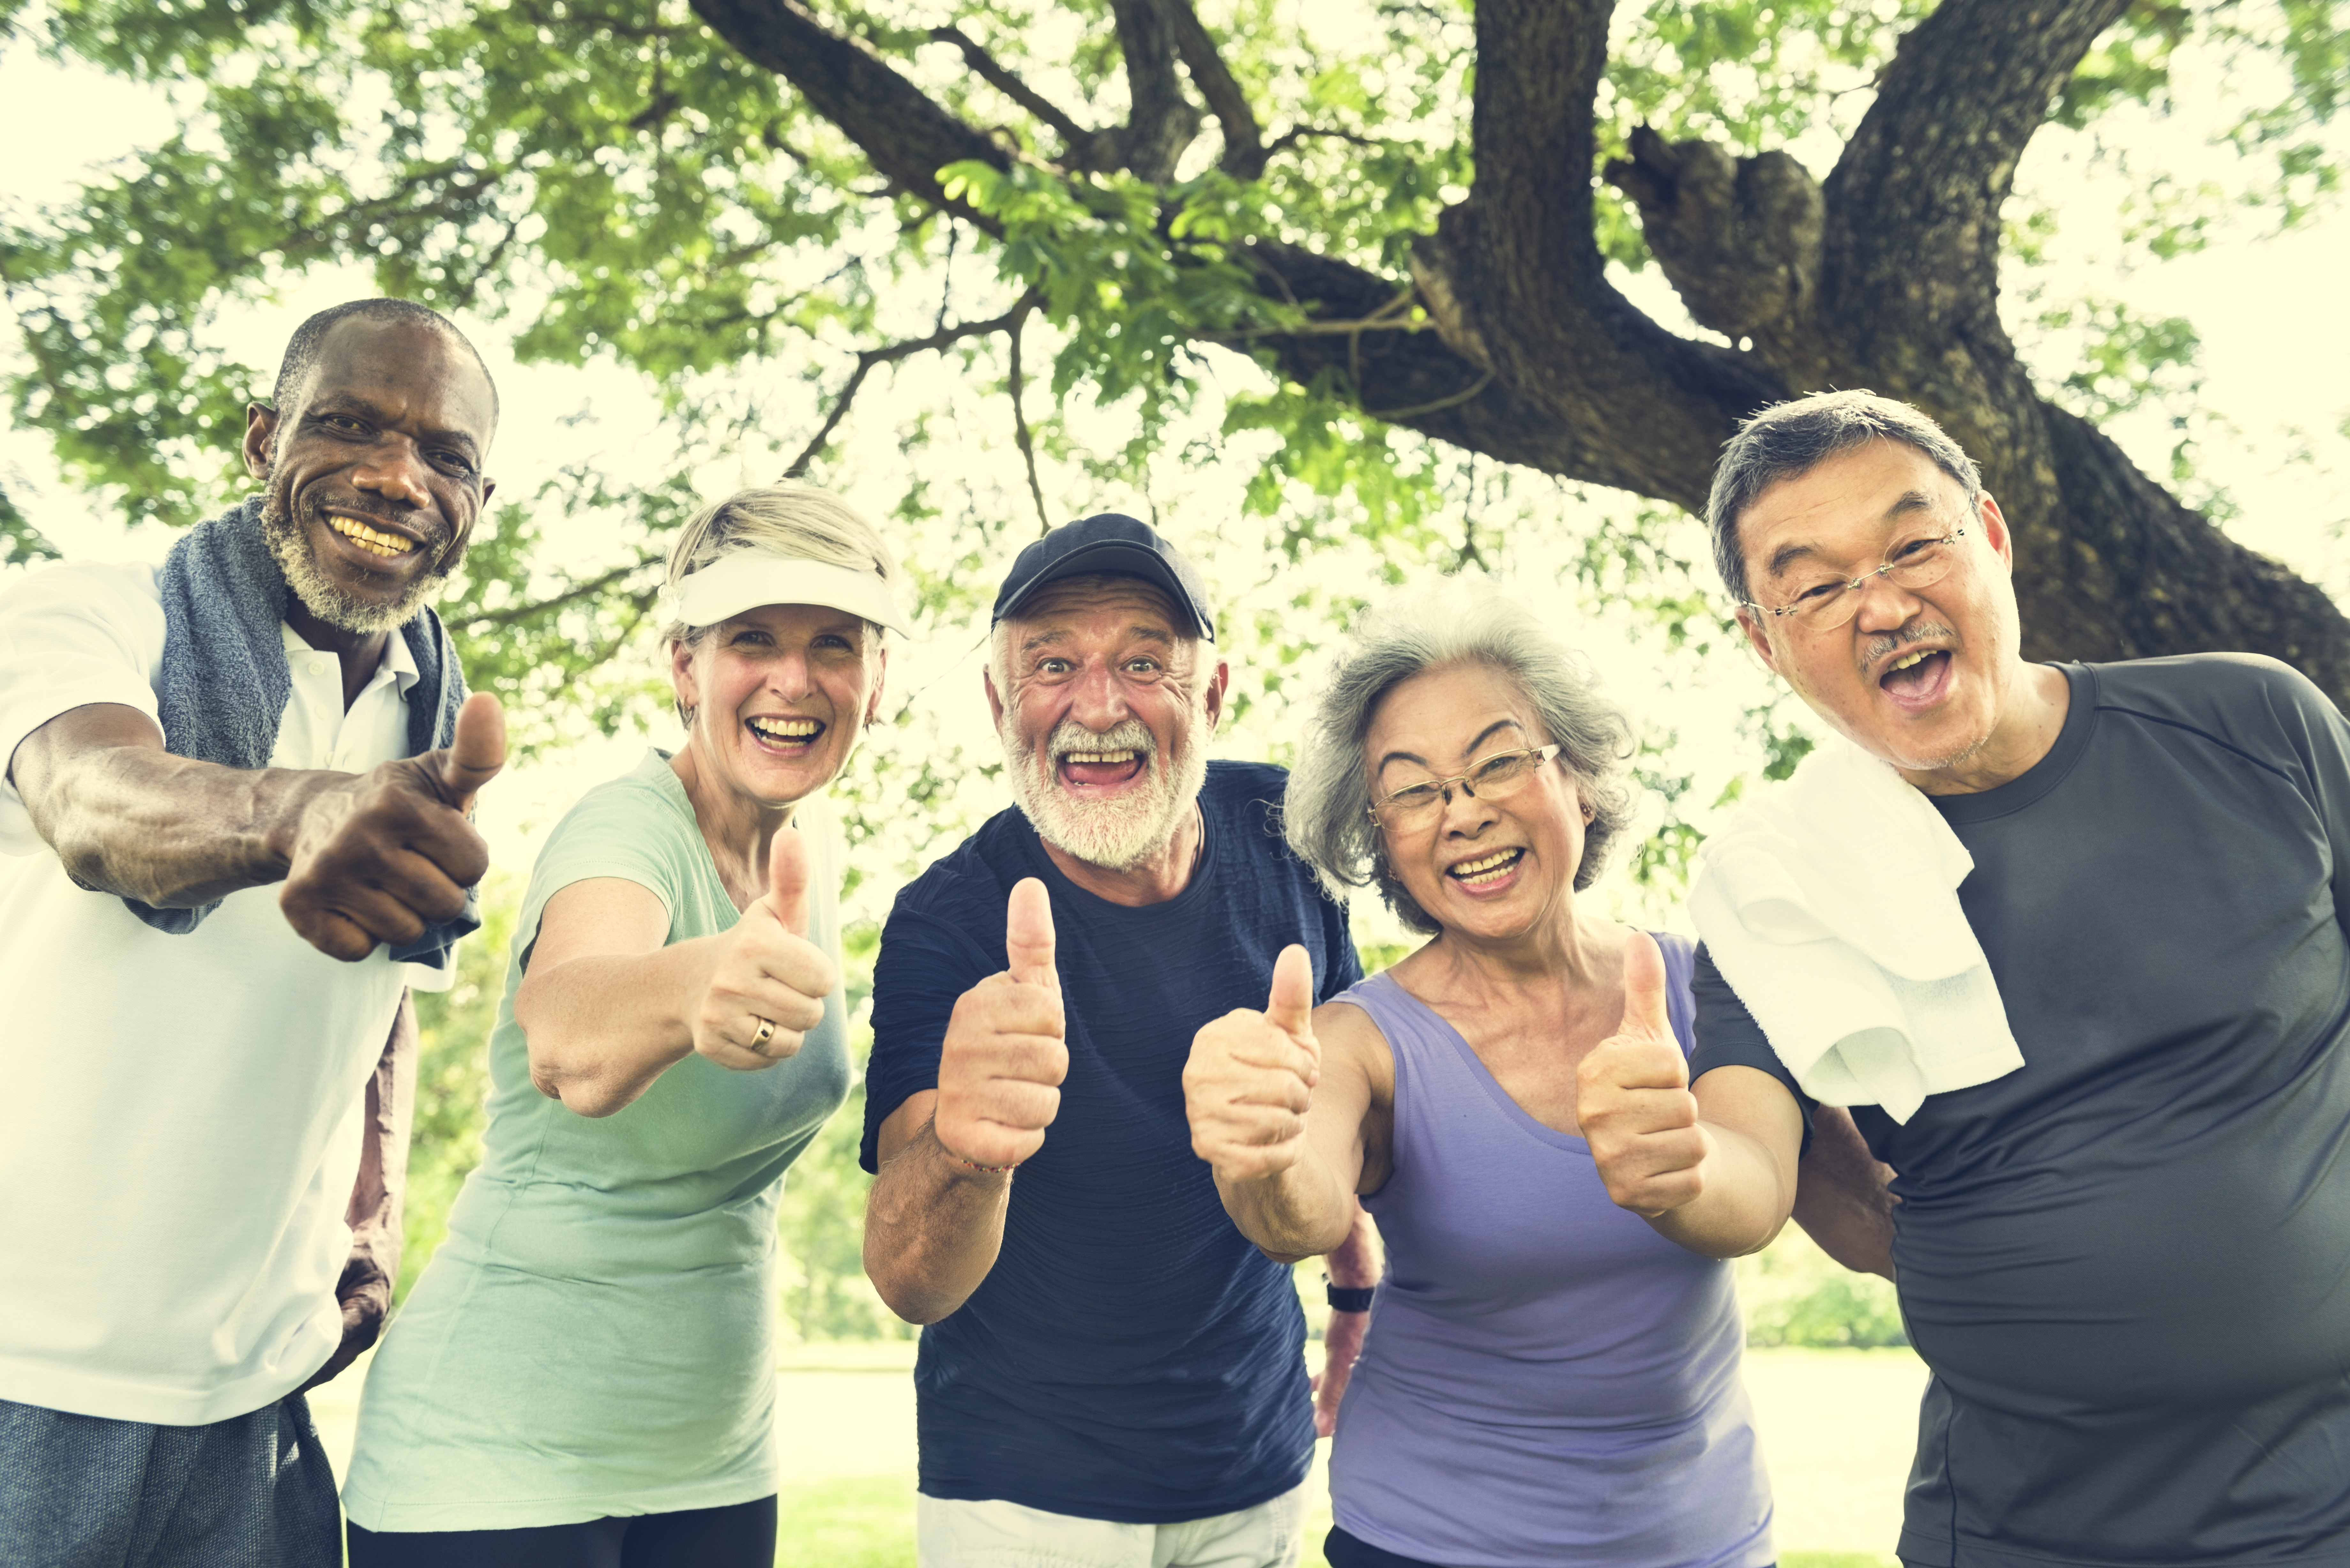 senior-group-friends-exercise-relax-concept-PC8WWBY